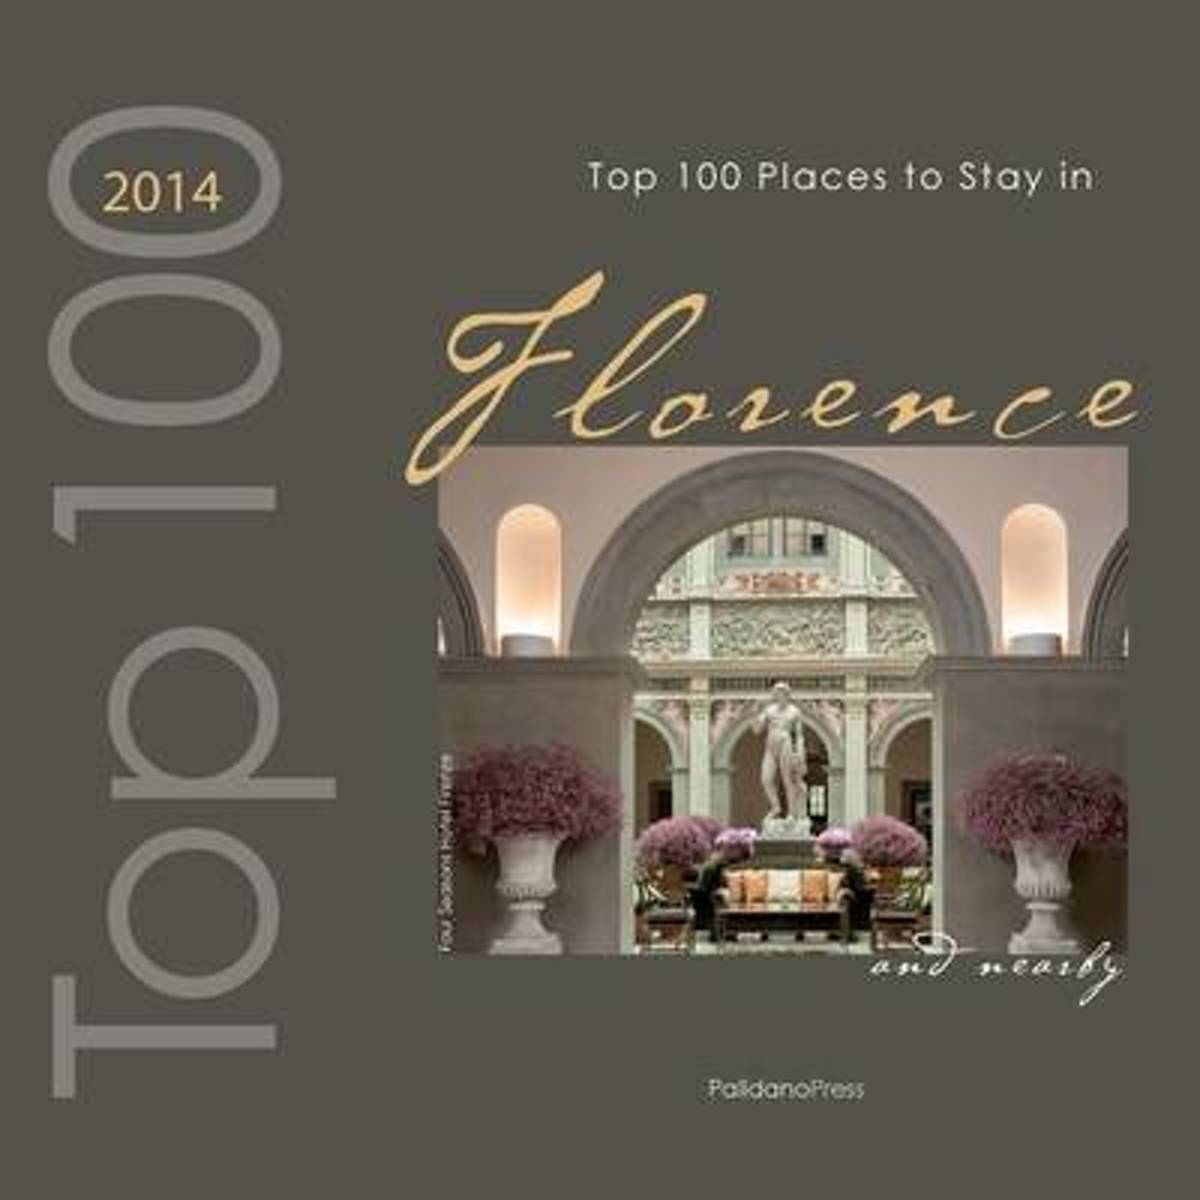 Top 100 Places to Stay in Florence & Nearby 2014